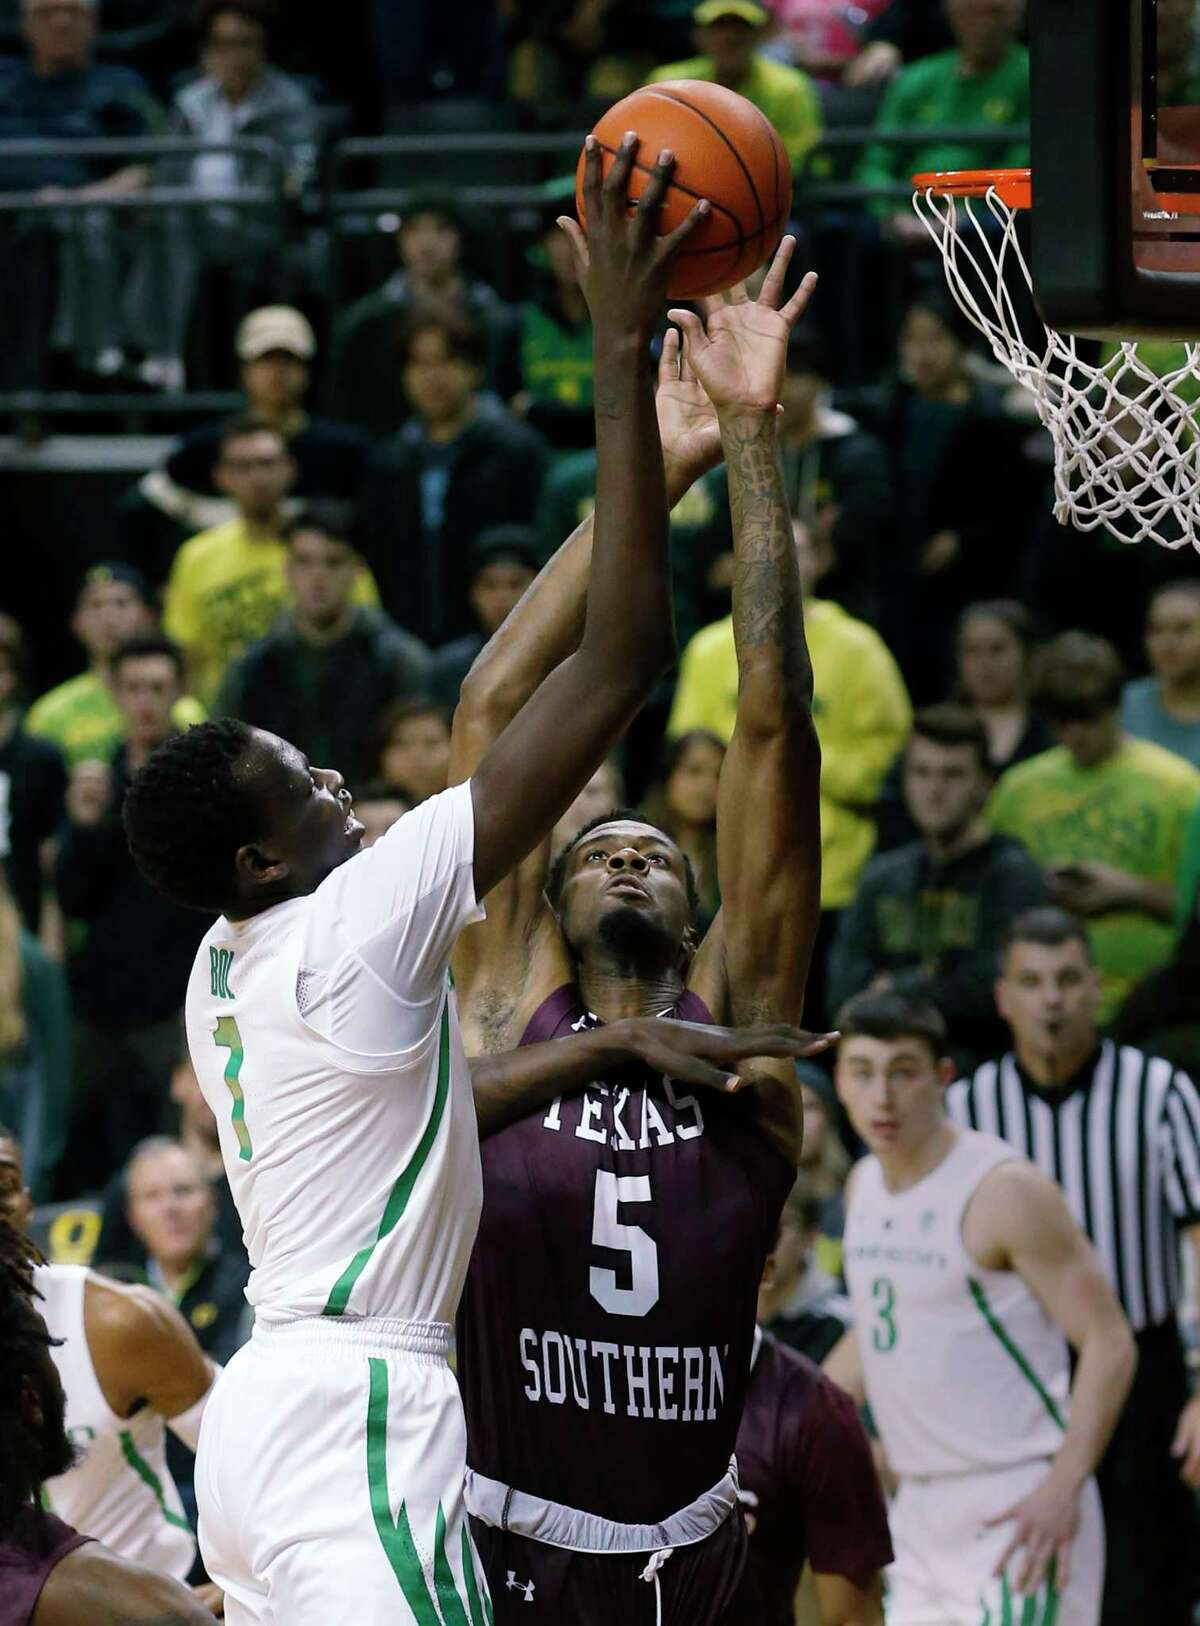 Oregon center Bol Bol is defended by Texas Southern center Trayvon Reed as he goes to the basket during the first half of an NCAA college basketball game in Eugene, Ore., Monday, Nov. 26, 2018. (Andy Nelson/The Register-Guard via AP)